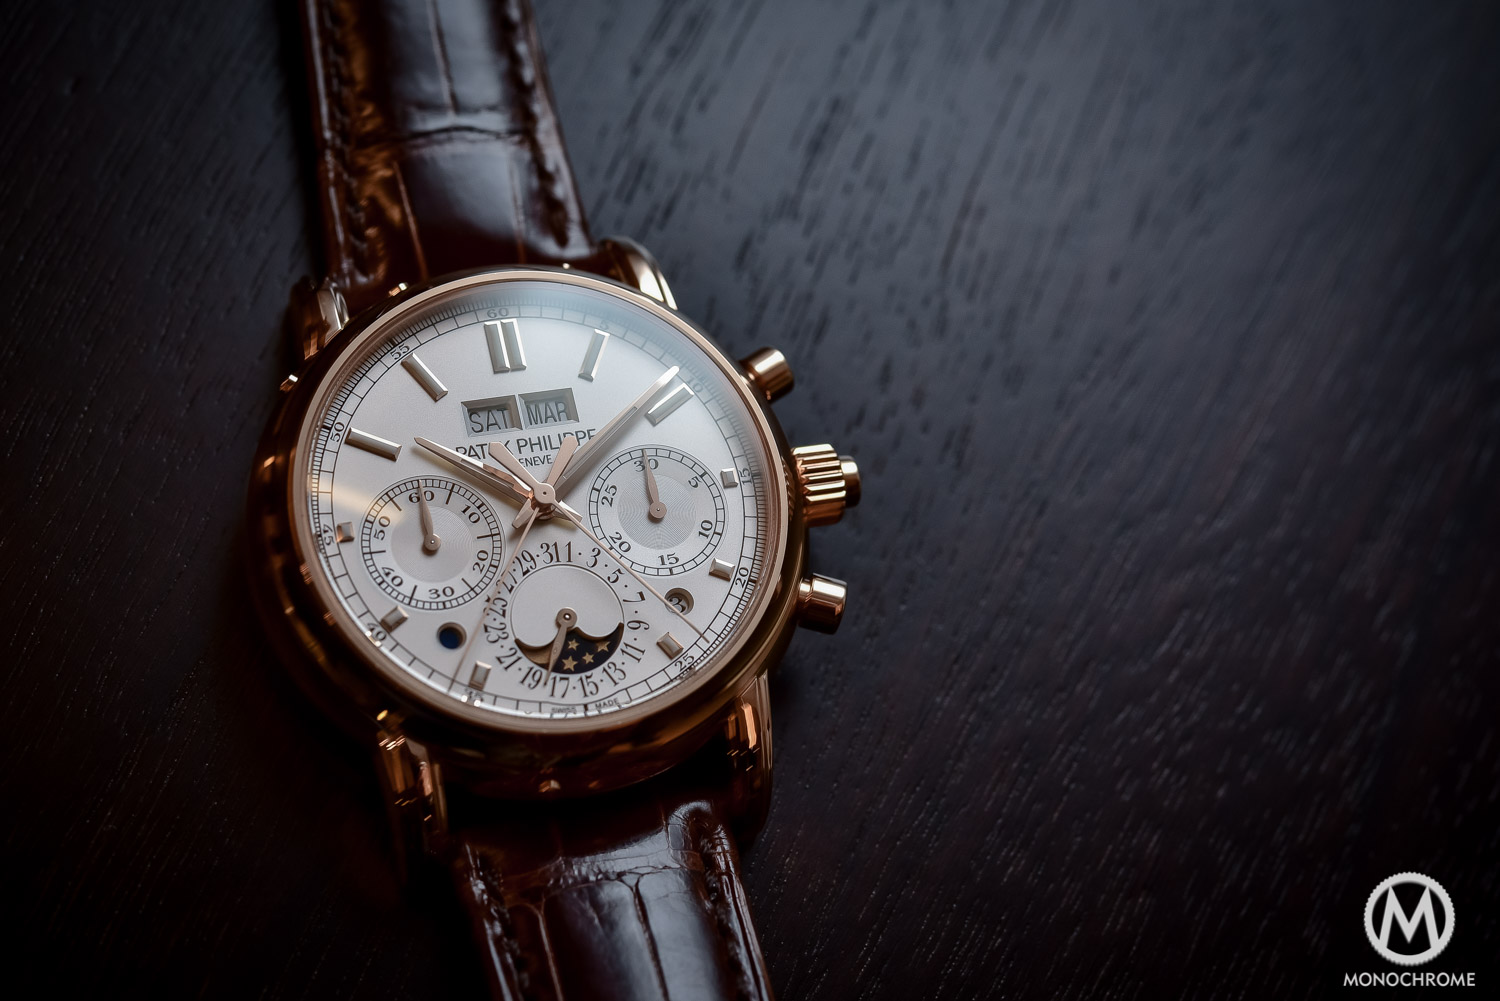 Patek Philippe 5204R Split-Seconds Chronograph Perpetual Calendar - Baselworld 2016 - 6